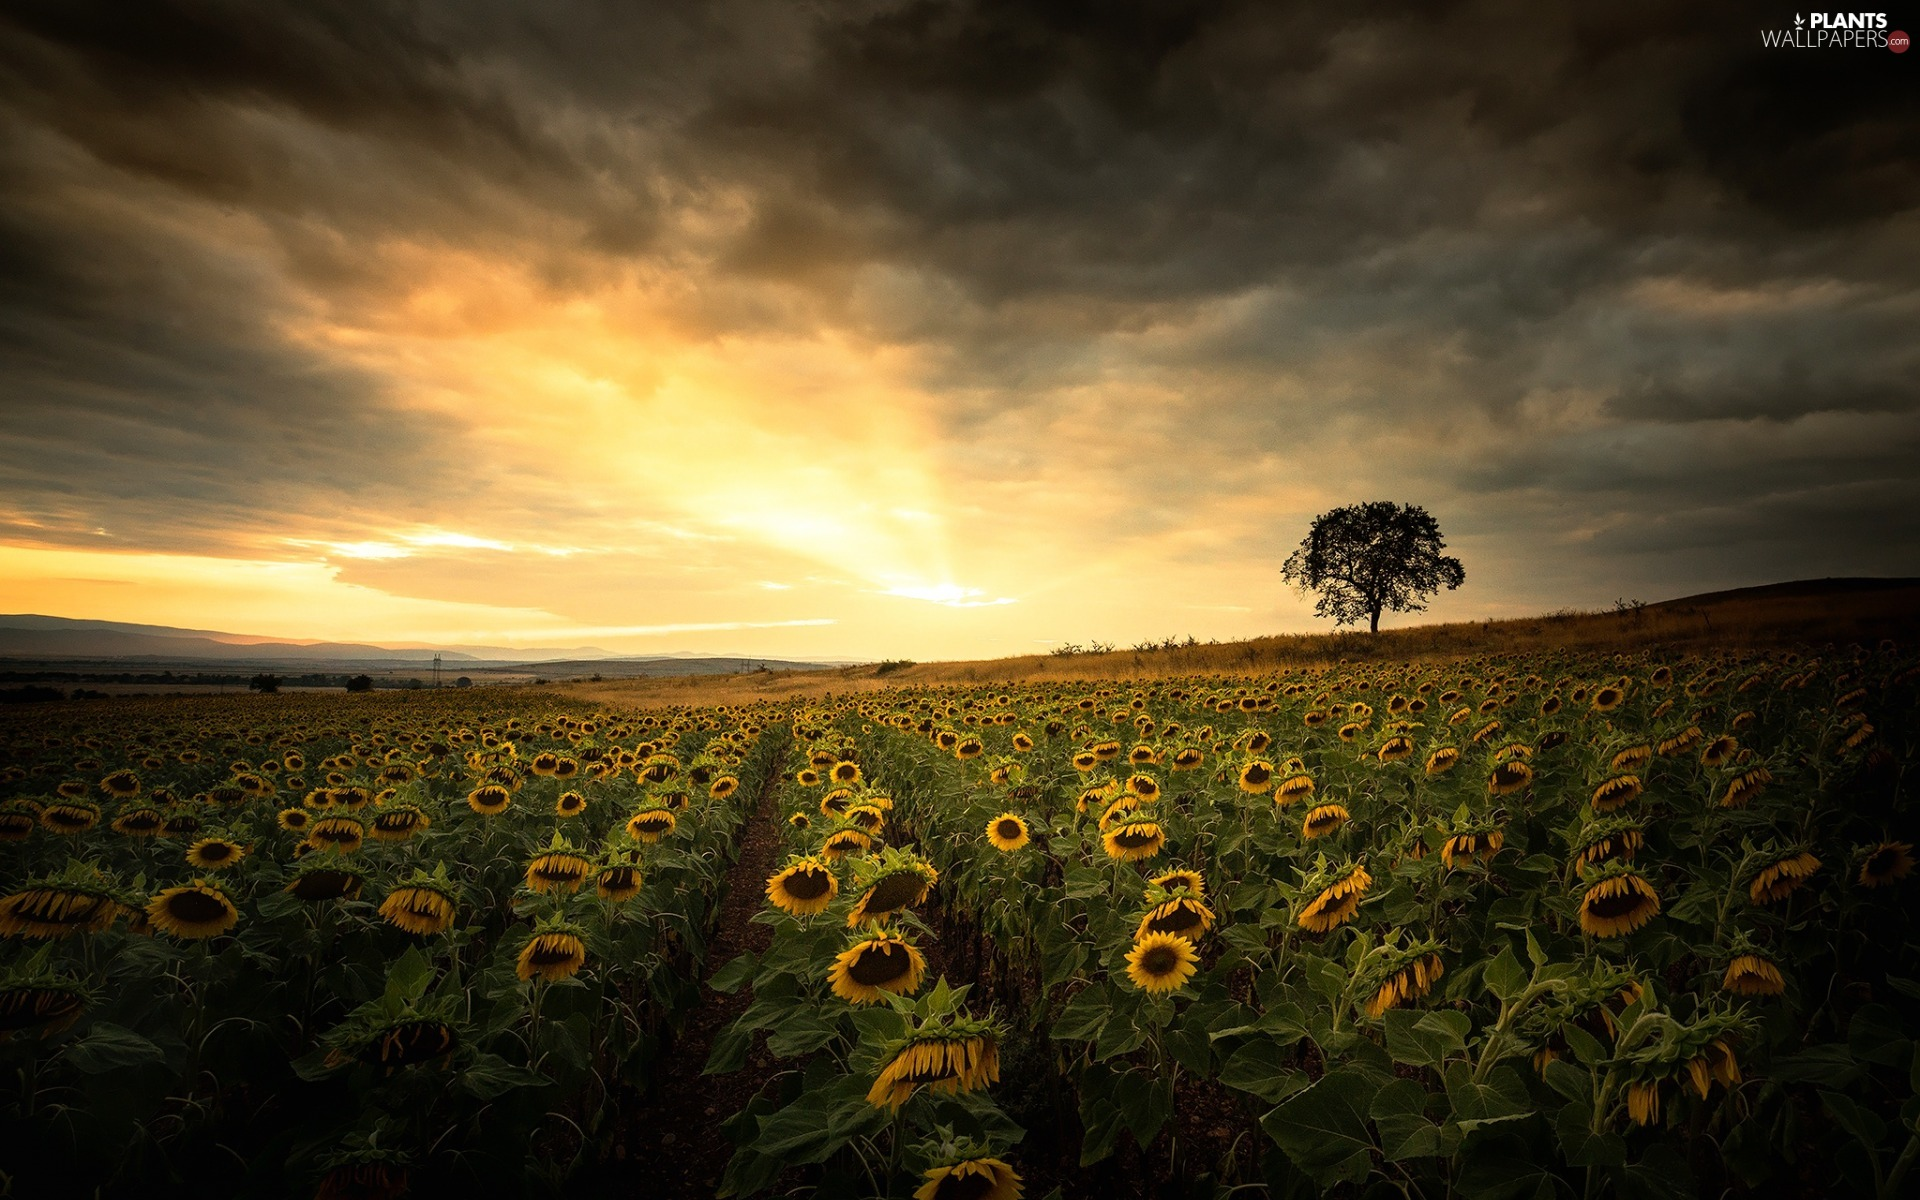 trees, Great Sunsets, Nice sunflowers, clouds, Field